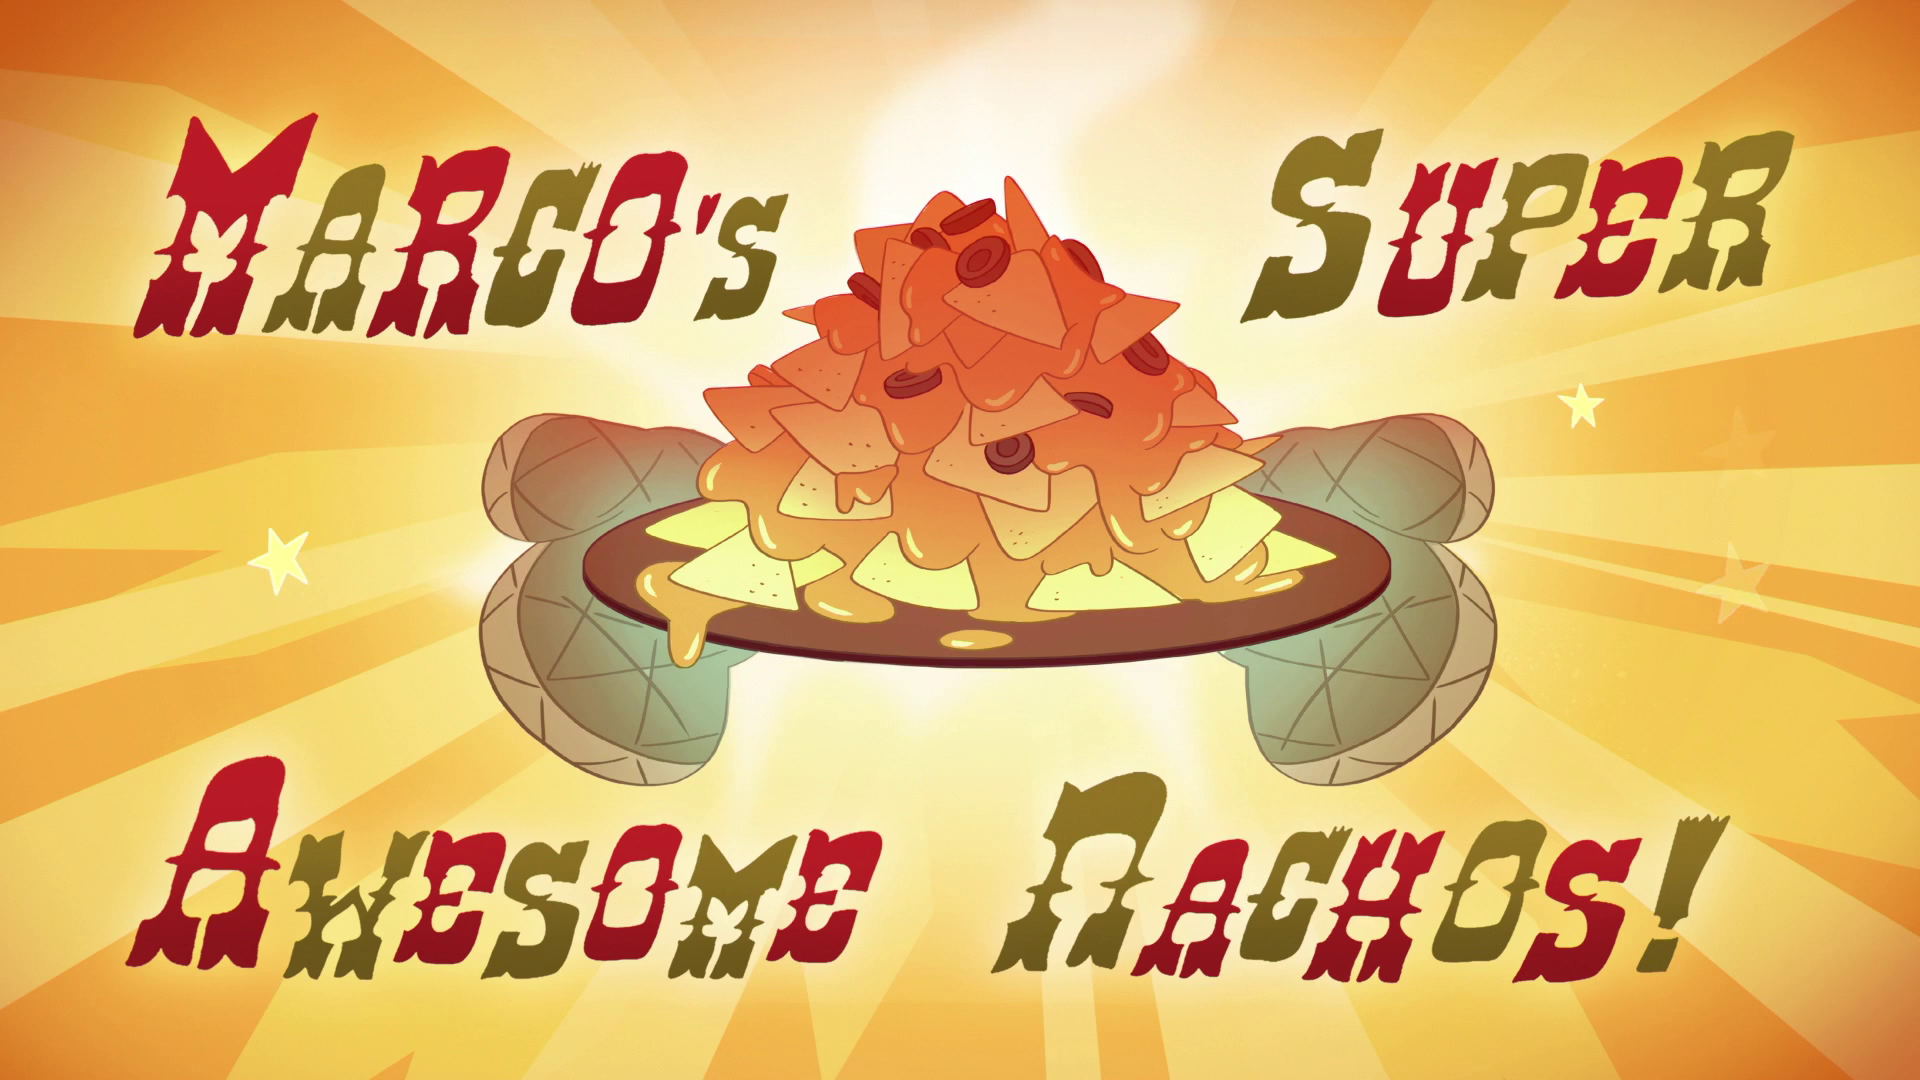 Marco\'s Super Awesome Nachos | Star vs. the Forces of Evil Wiki ...